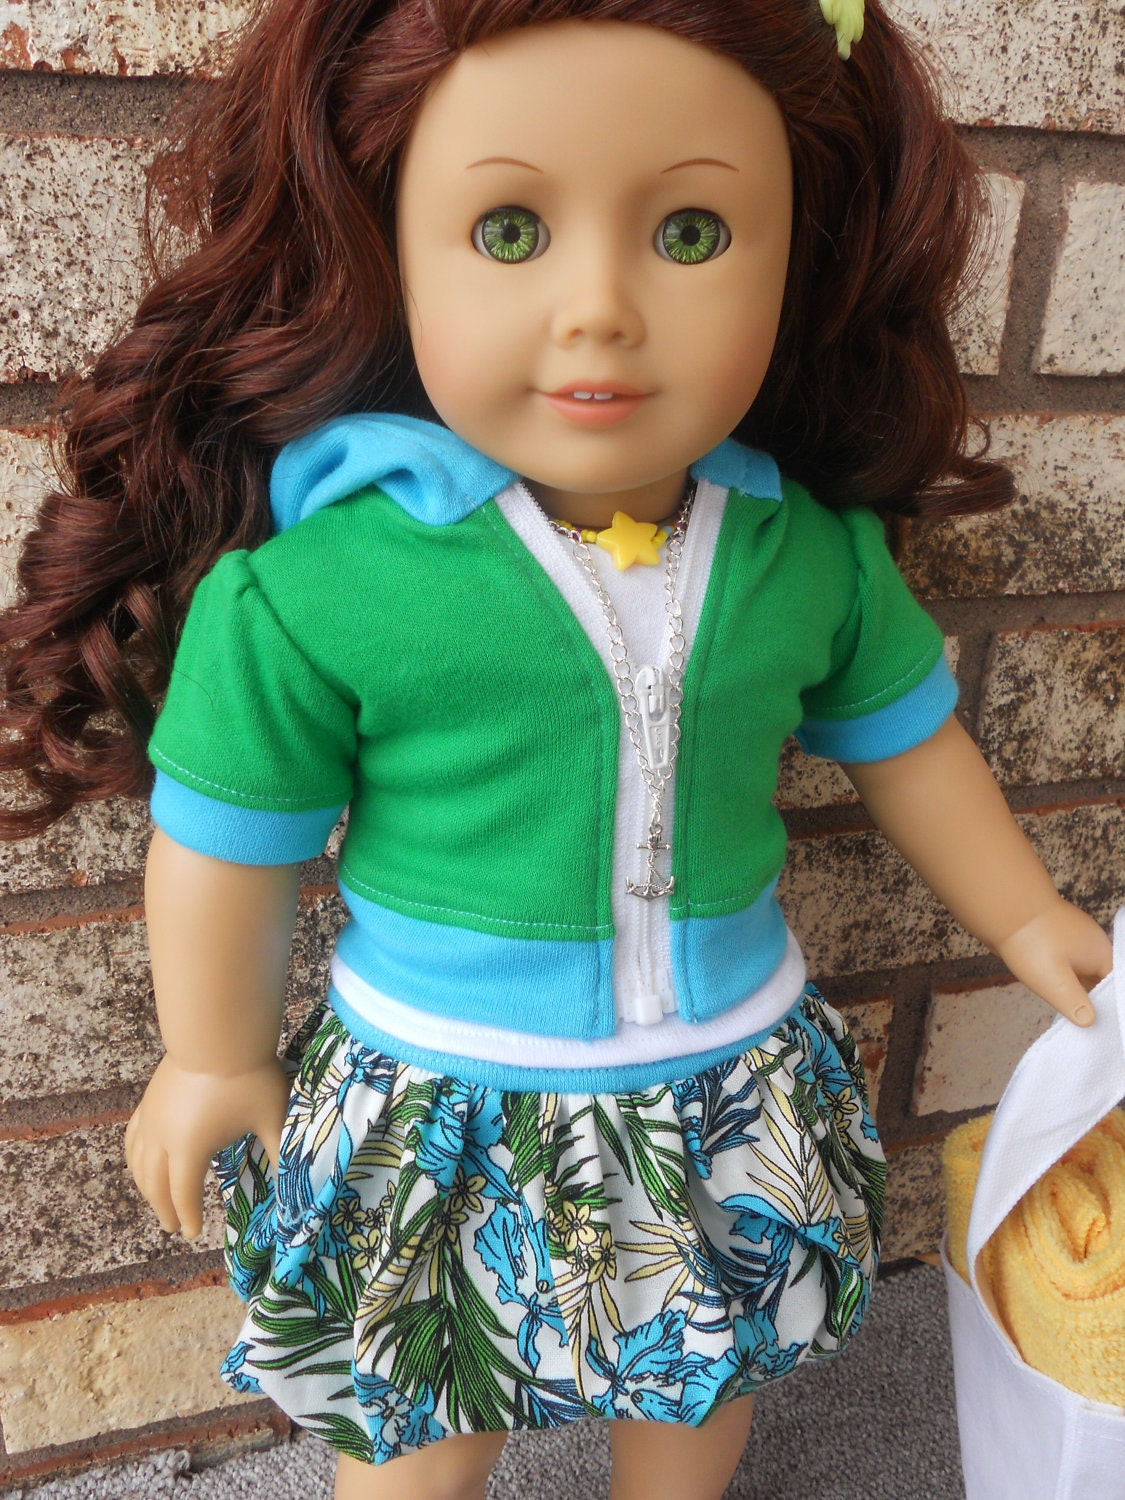 Beach Beauty for American Girl Dolls